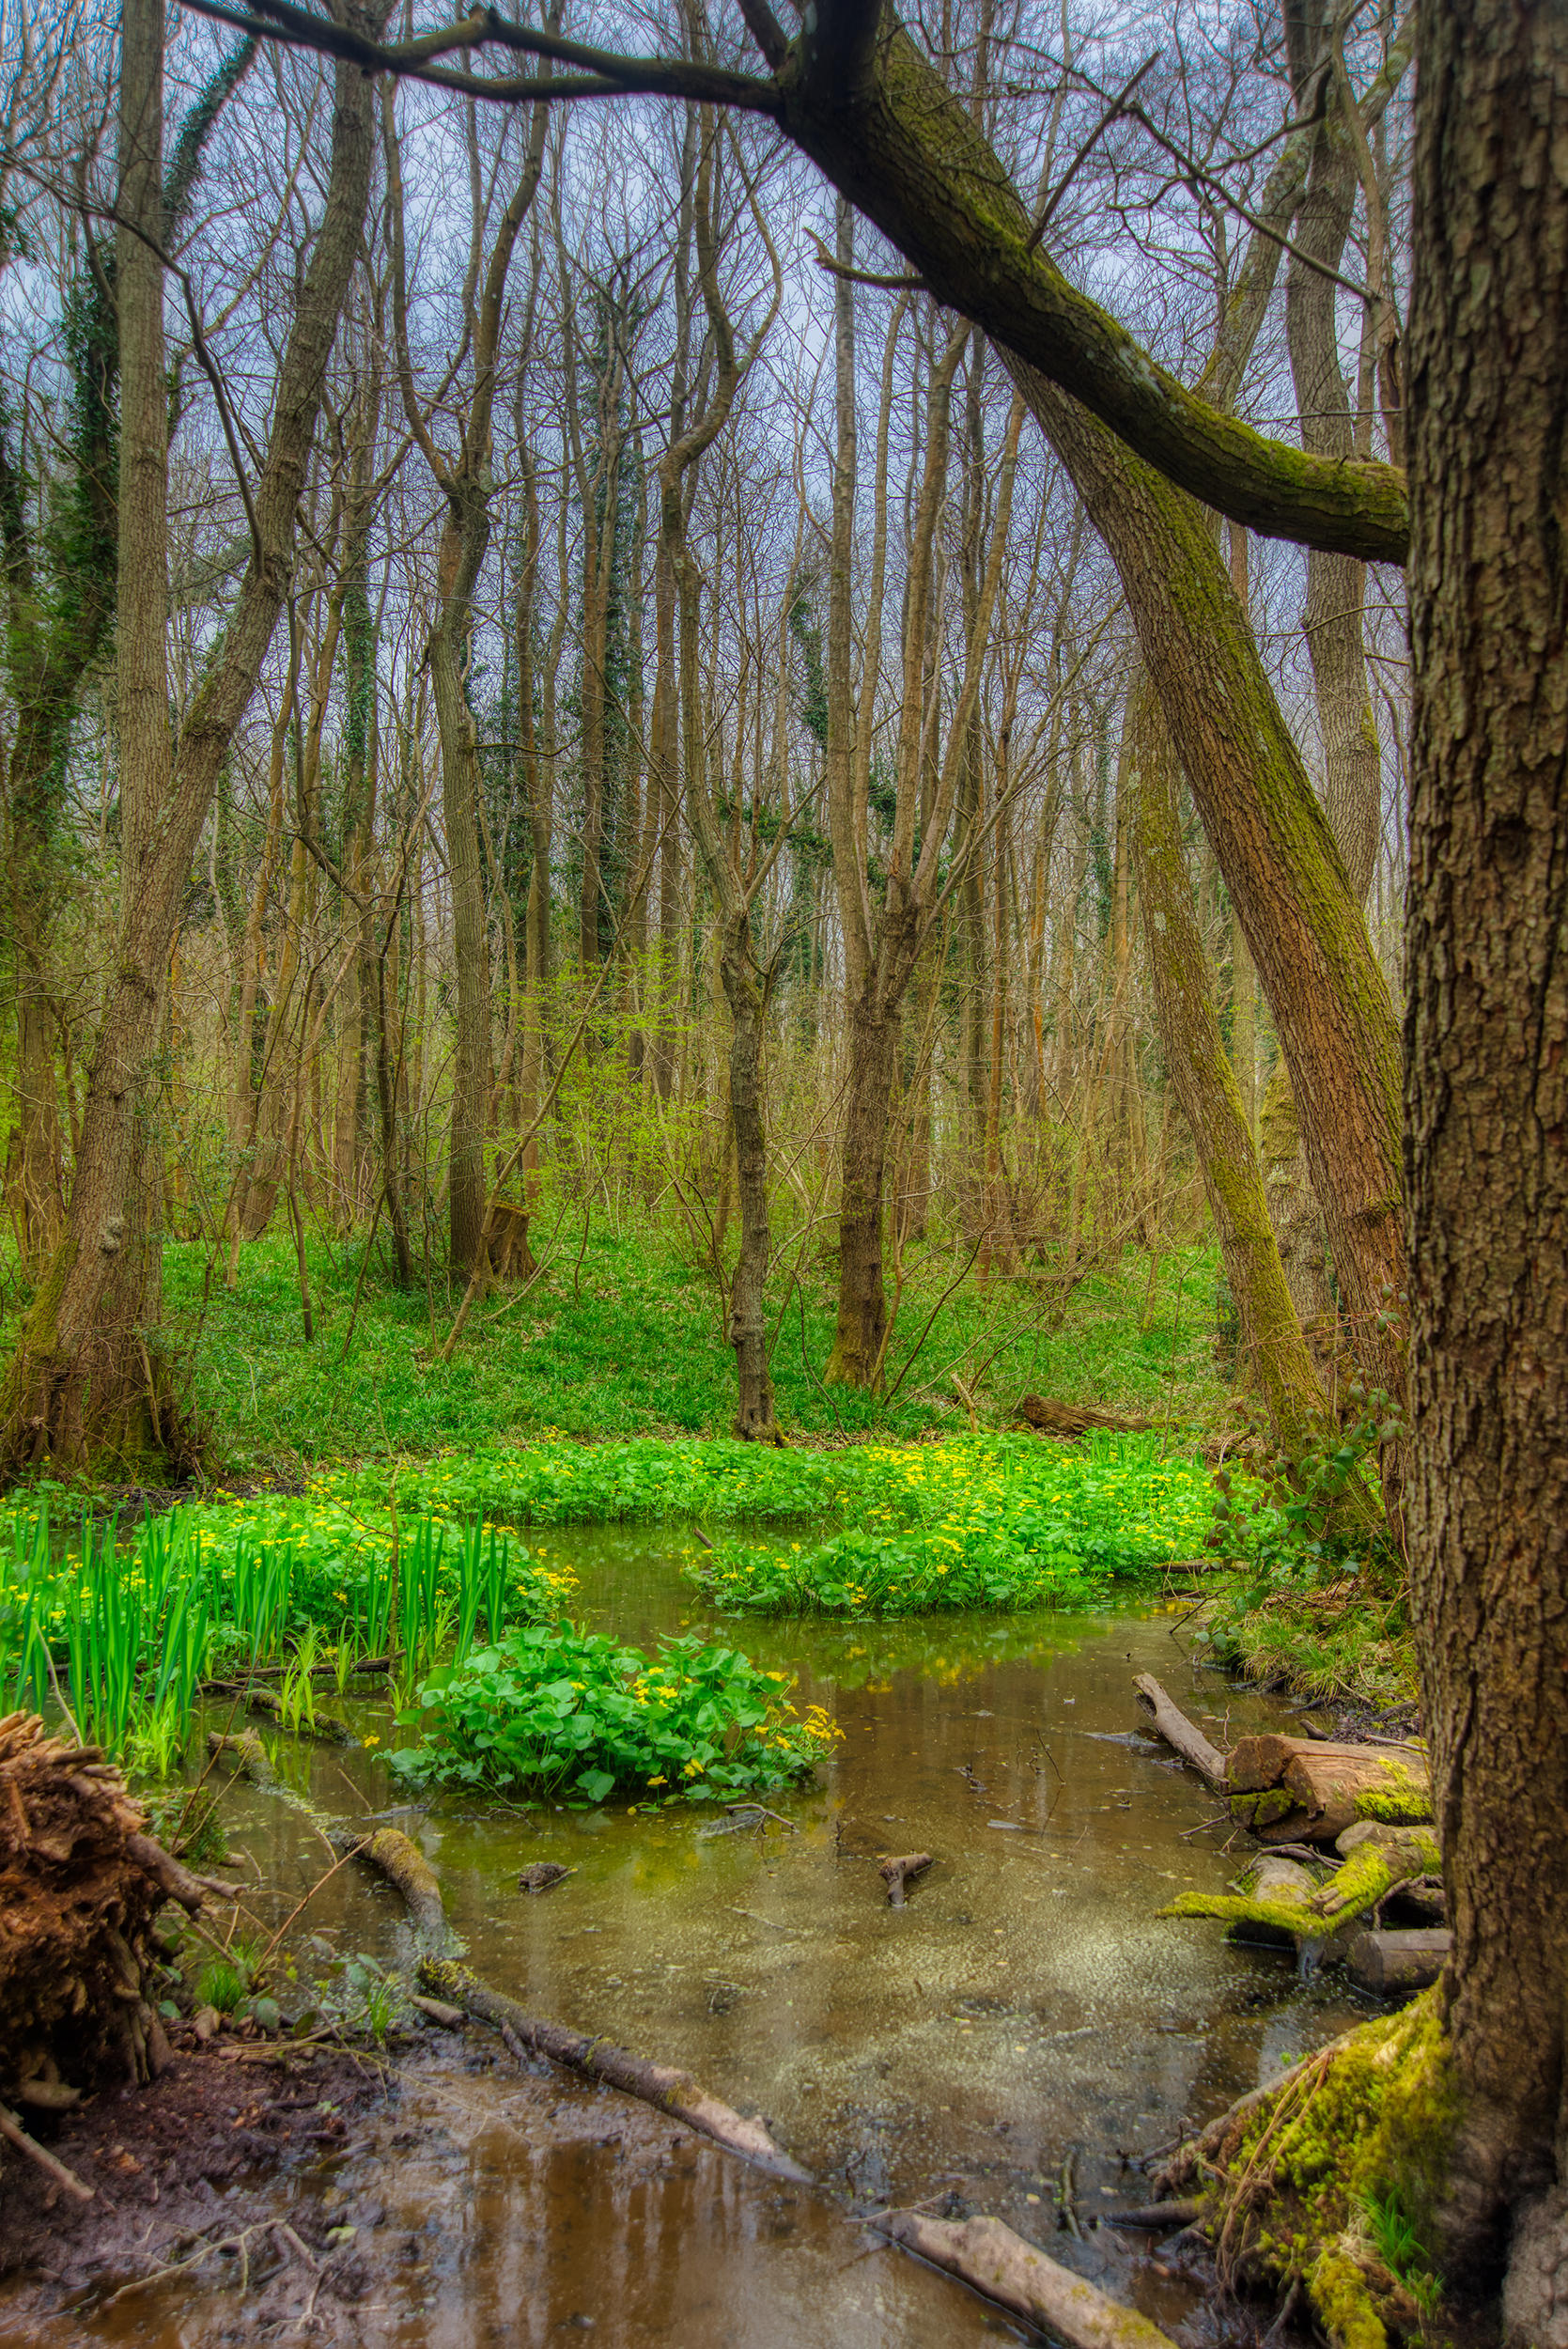 Hidden Woods of Sussex    📷 PHOTO INFORMATION    DATE TAKEN  2019-04-06 13:23:46   CAMERA  D610   CAMERA MAKE  NIKON   EXPOSURE TIME  1/25   APERTURE  F/8   ISO  100   FOCAL LENGTH  32MM